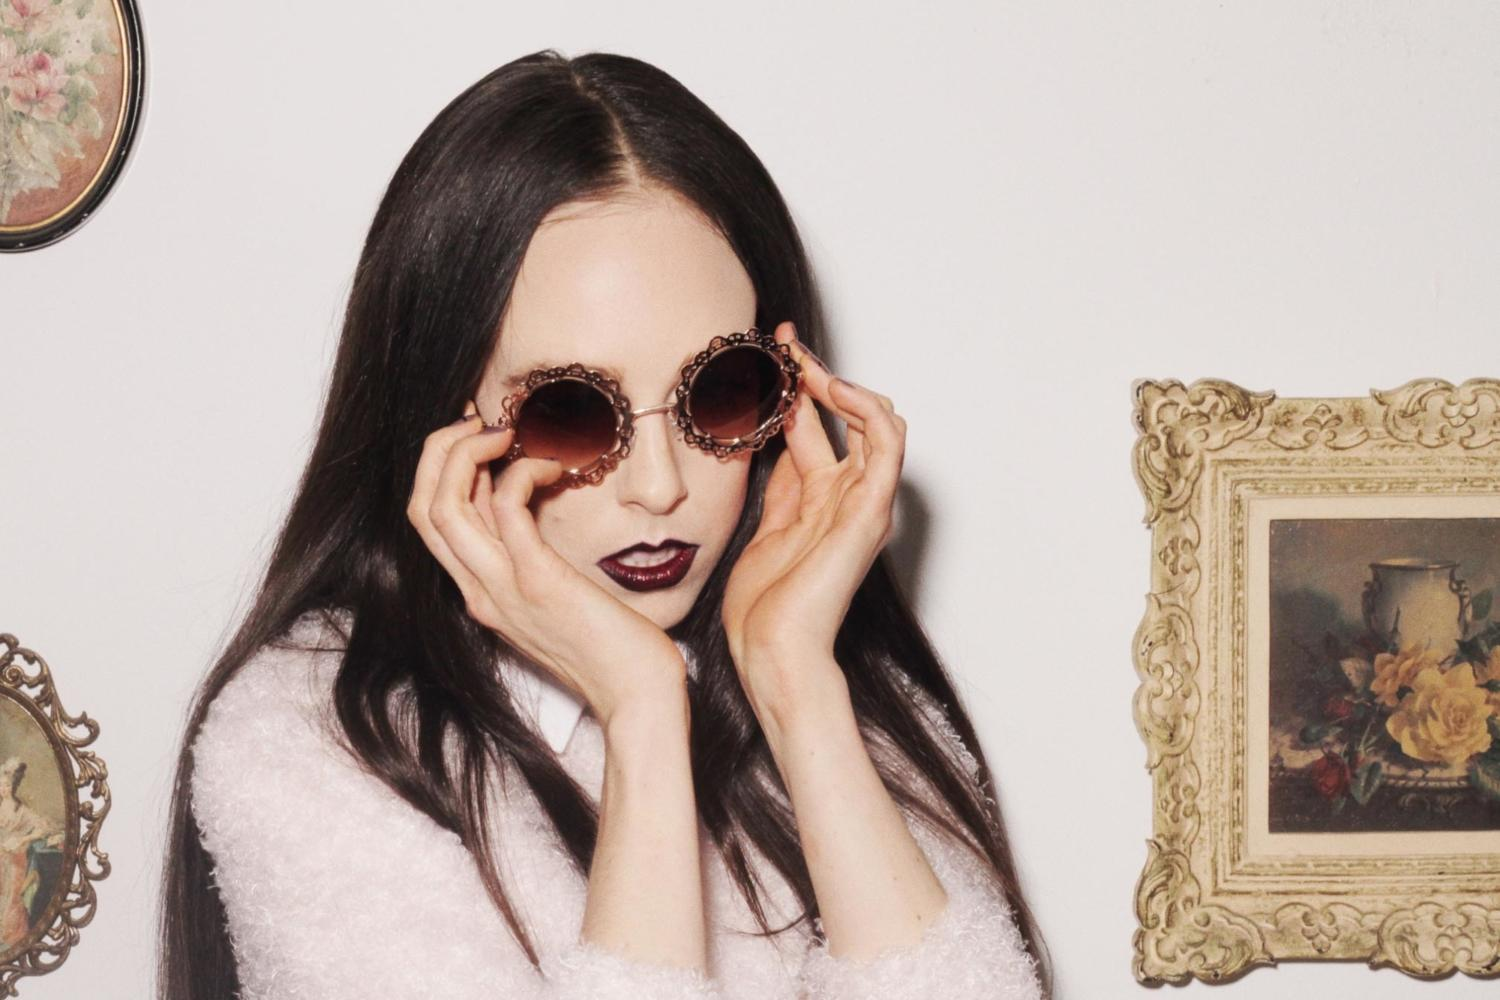 Allie X shares 'XHIBIT 1' of new 'BITCH' video